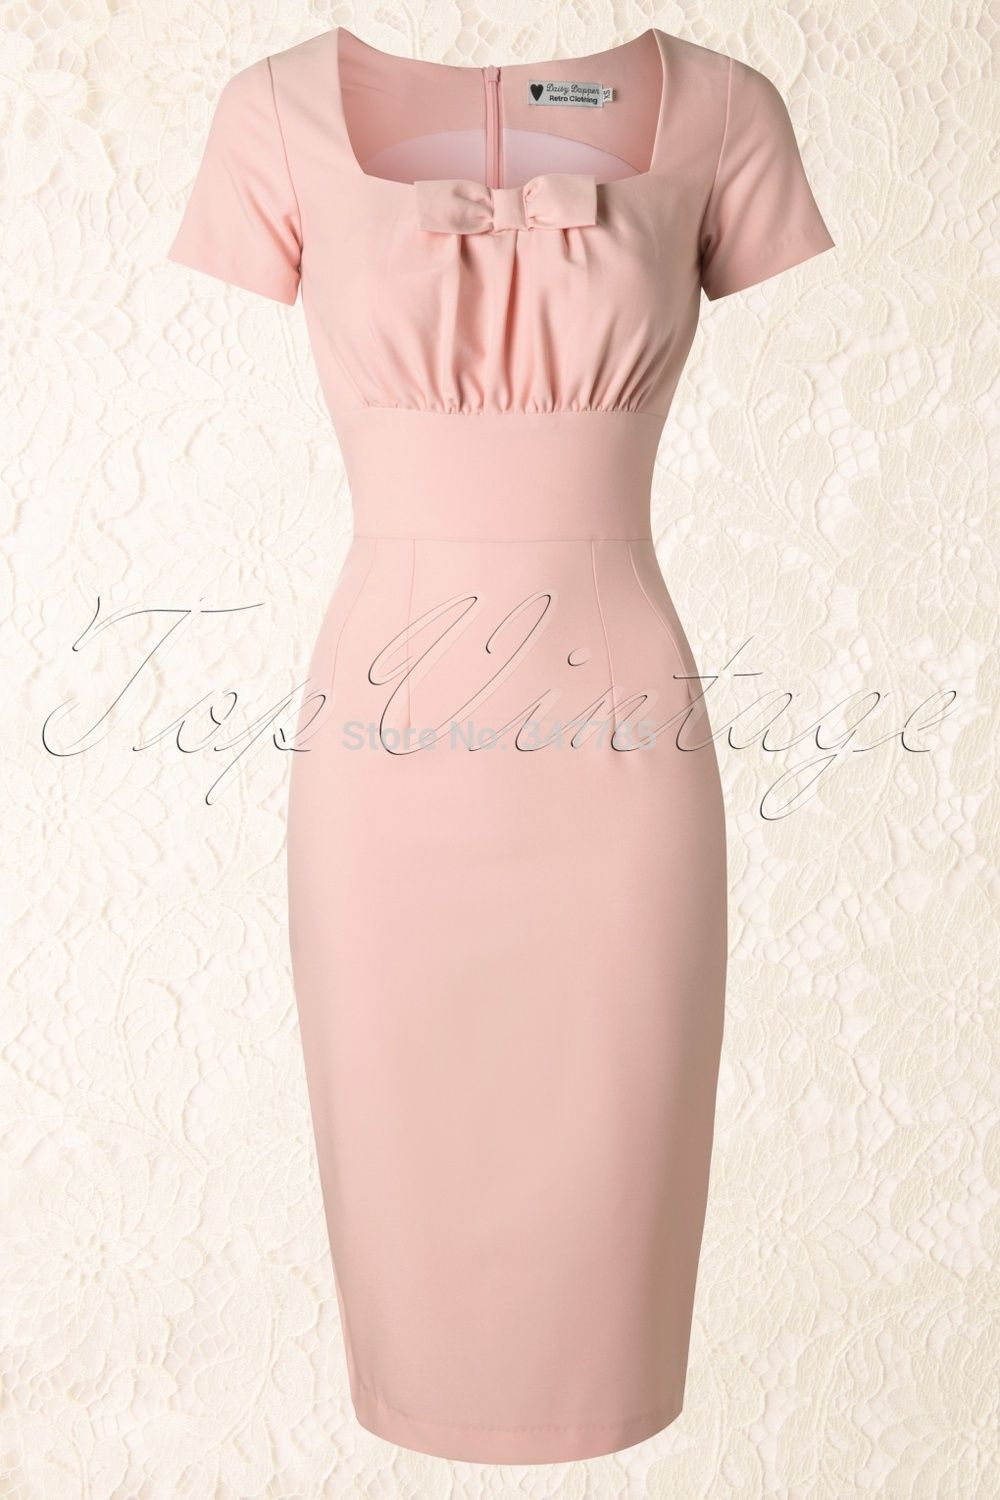 2014 Summer Women Vintage 50s Pinup Retro Pink Neck With Bow Mid Pencil Formal Work Wear Office Ladies Plus Size Bodyco Fashion Vintage Outfits Vintage Dresses [ 1500 x 1000 Pixel ]